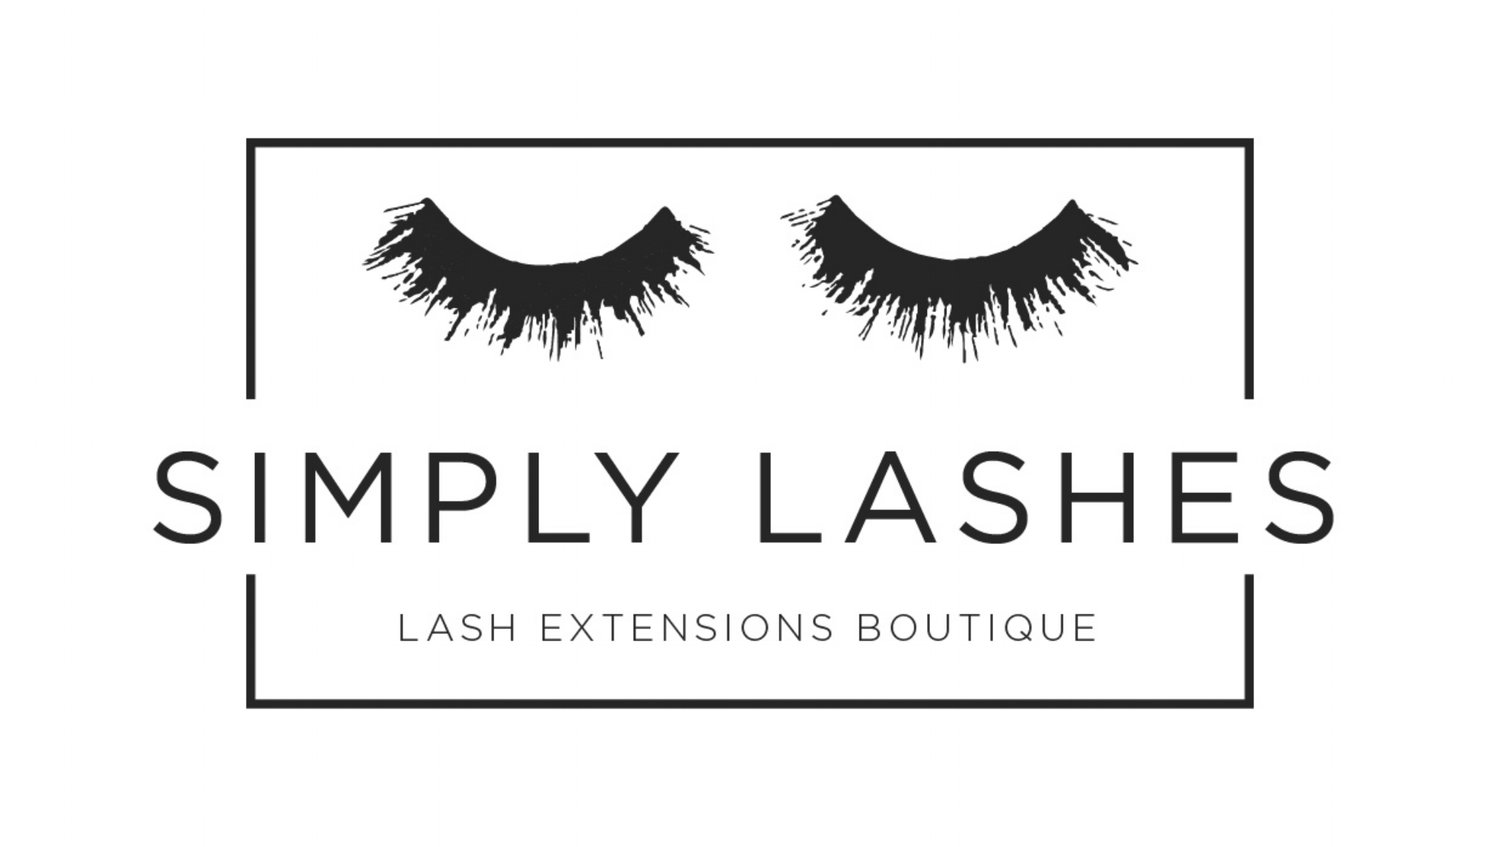 Simply Lashes